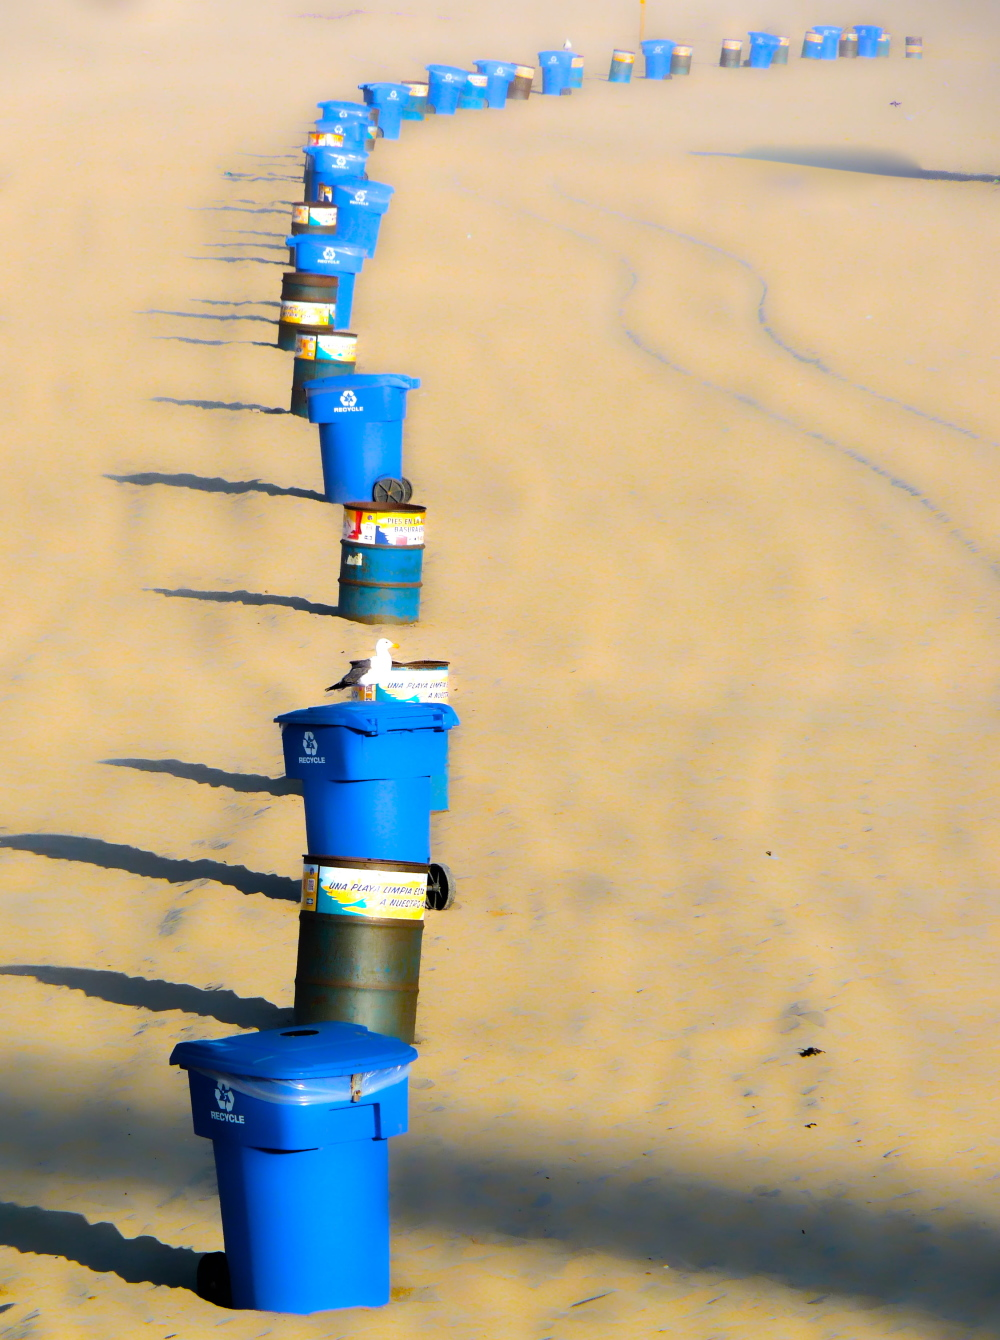 trash can, balsano, santa monica beach